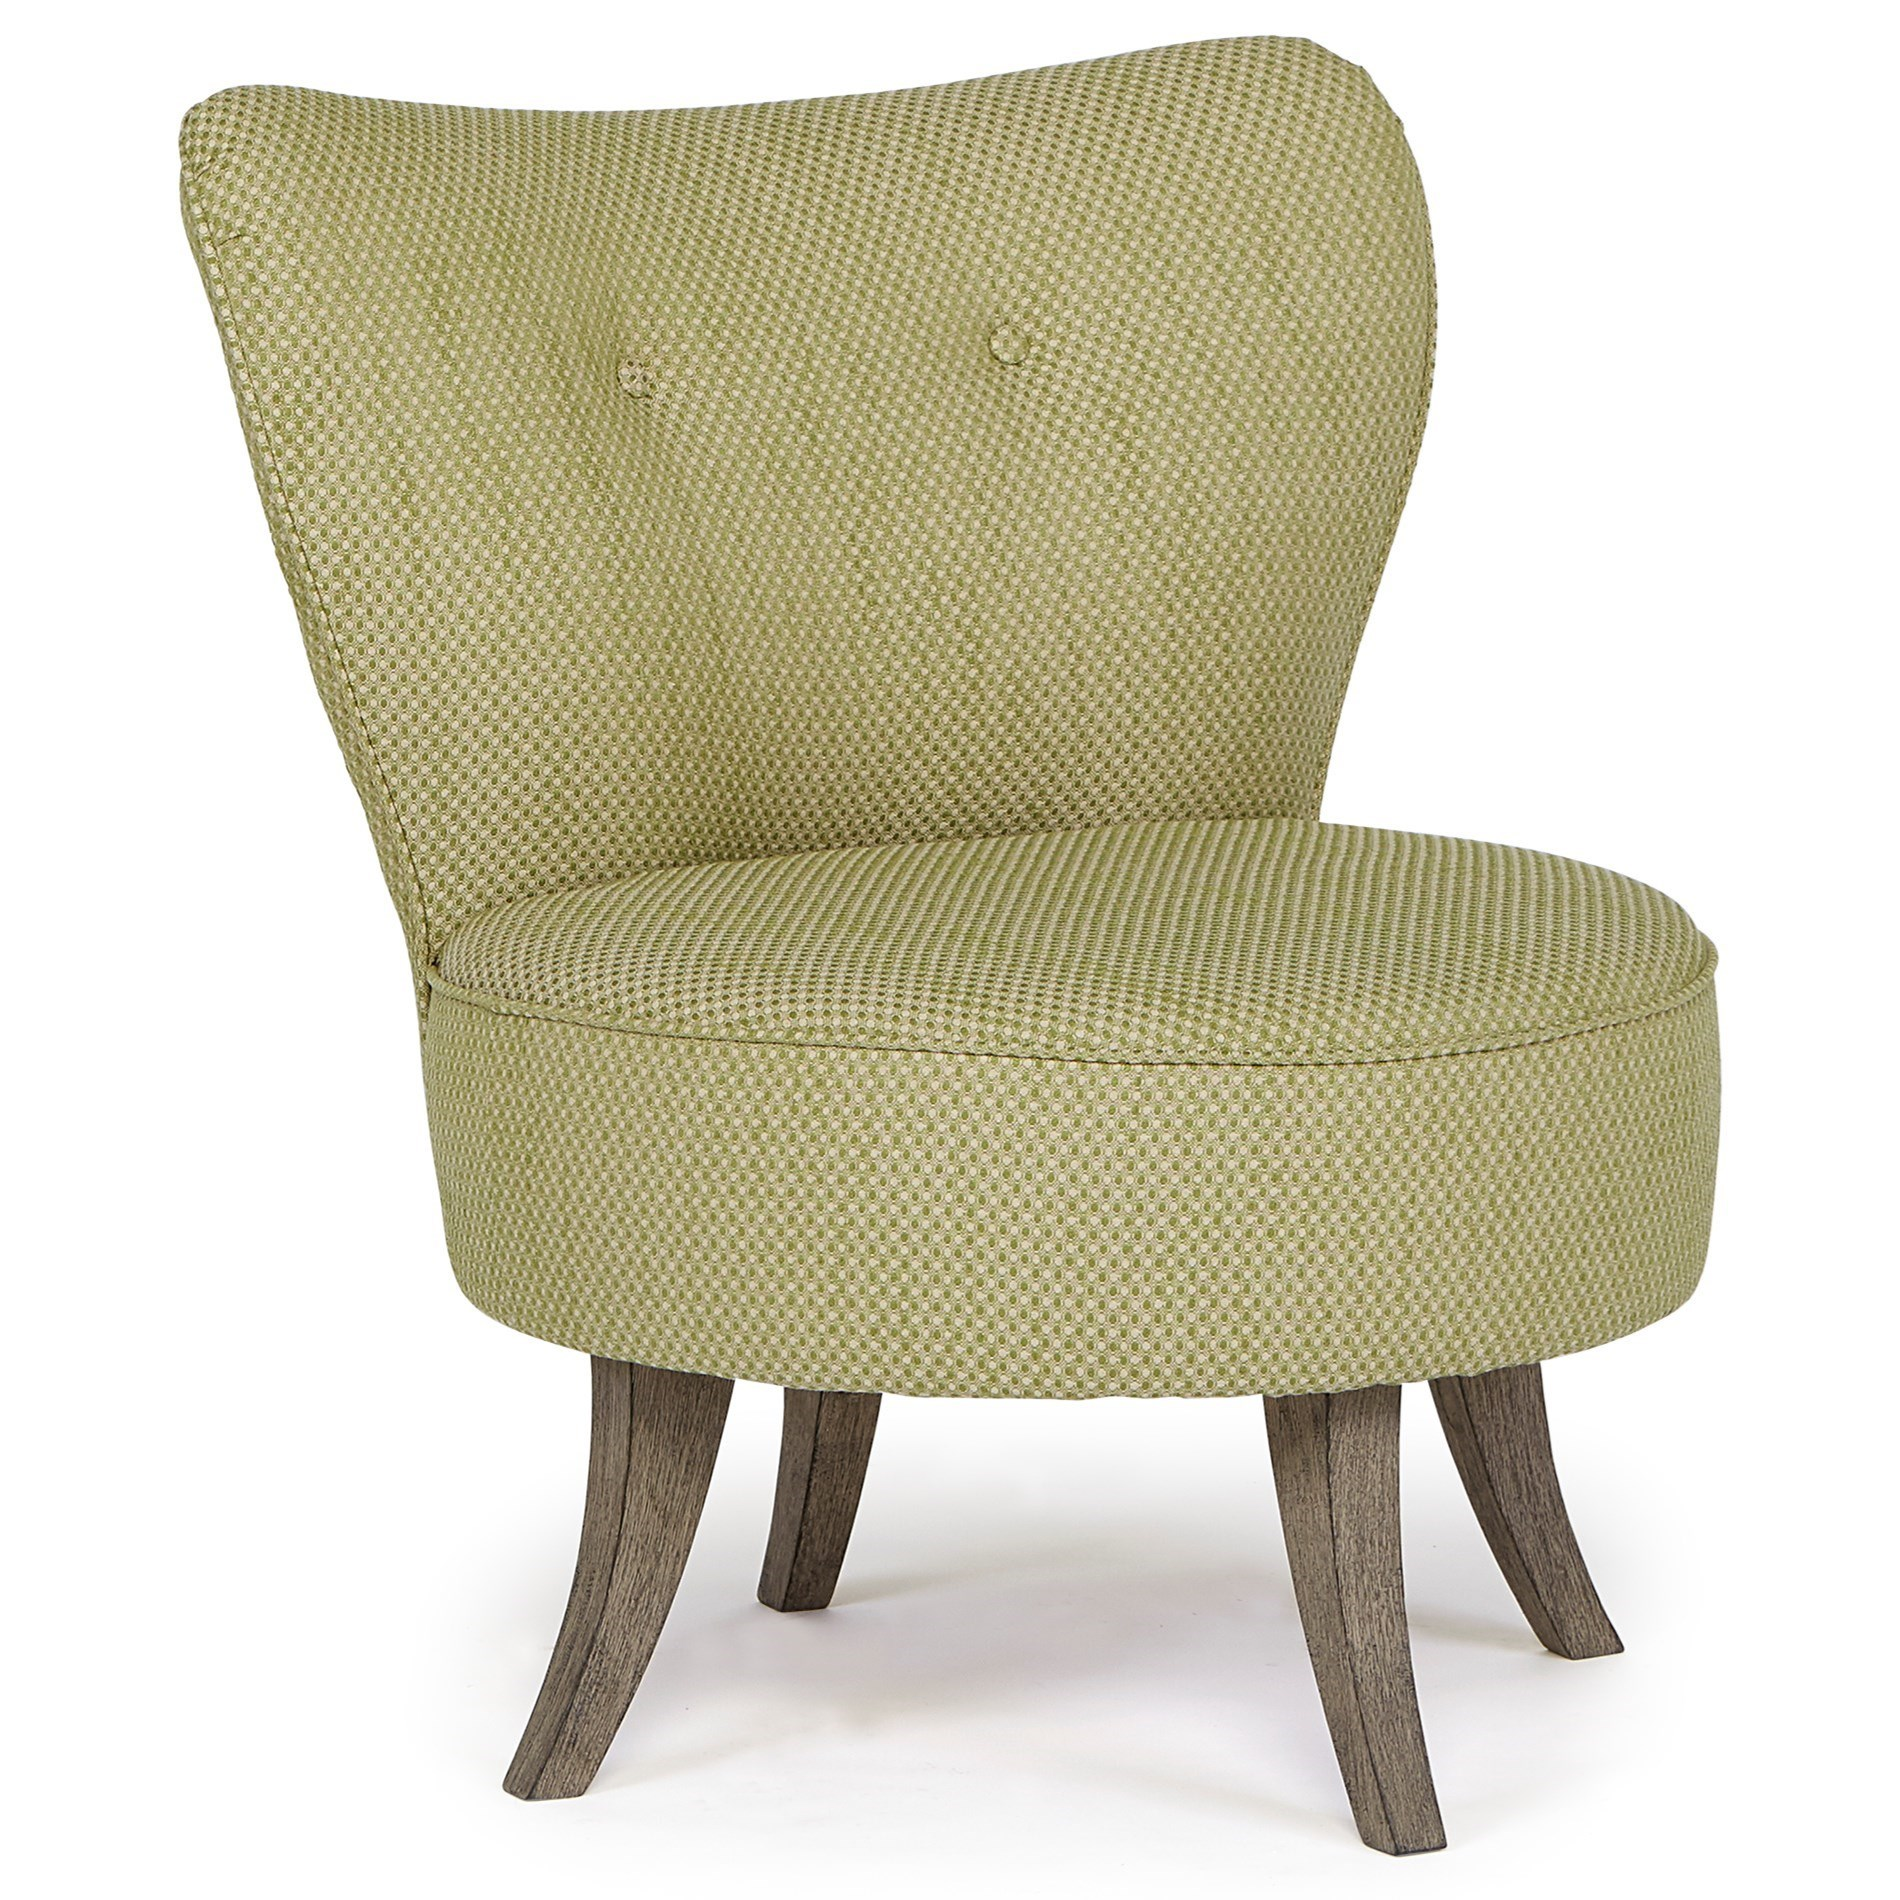 Chairs - Swivel Barrel Florence Swivel Chair by Best Home Furnishings at Lapeer Furniture & Mattress Center